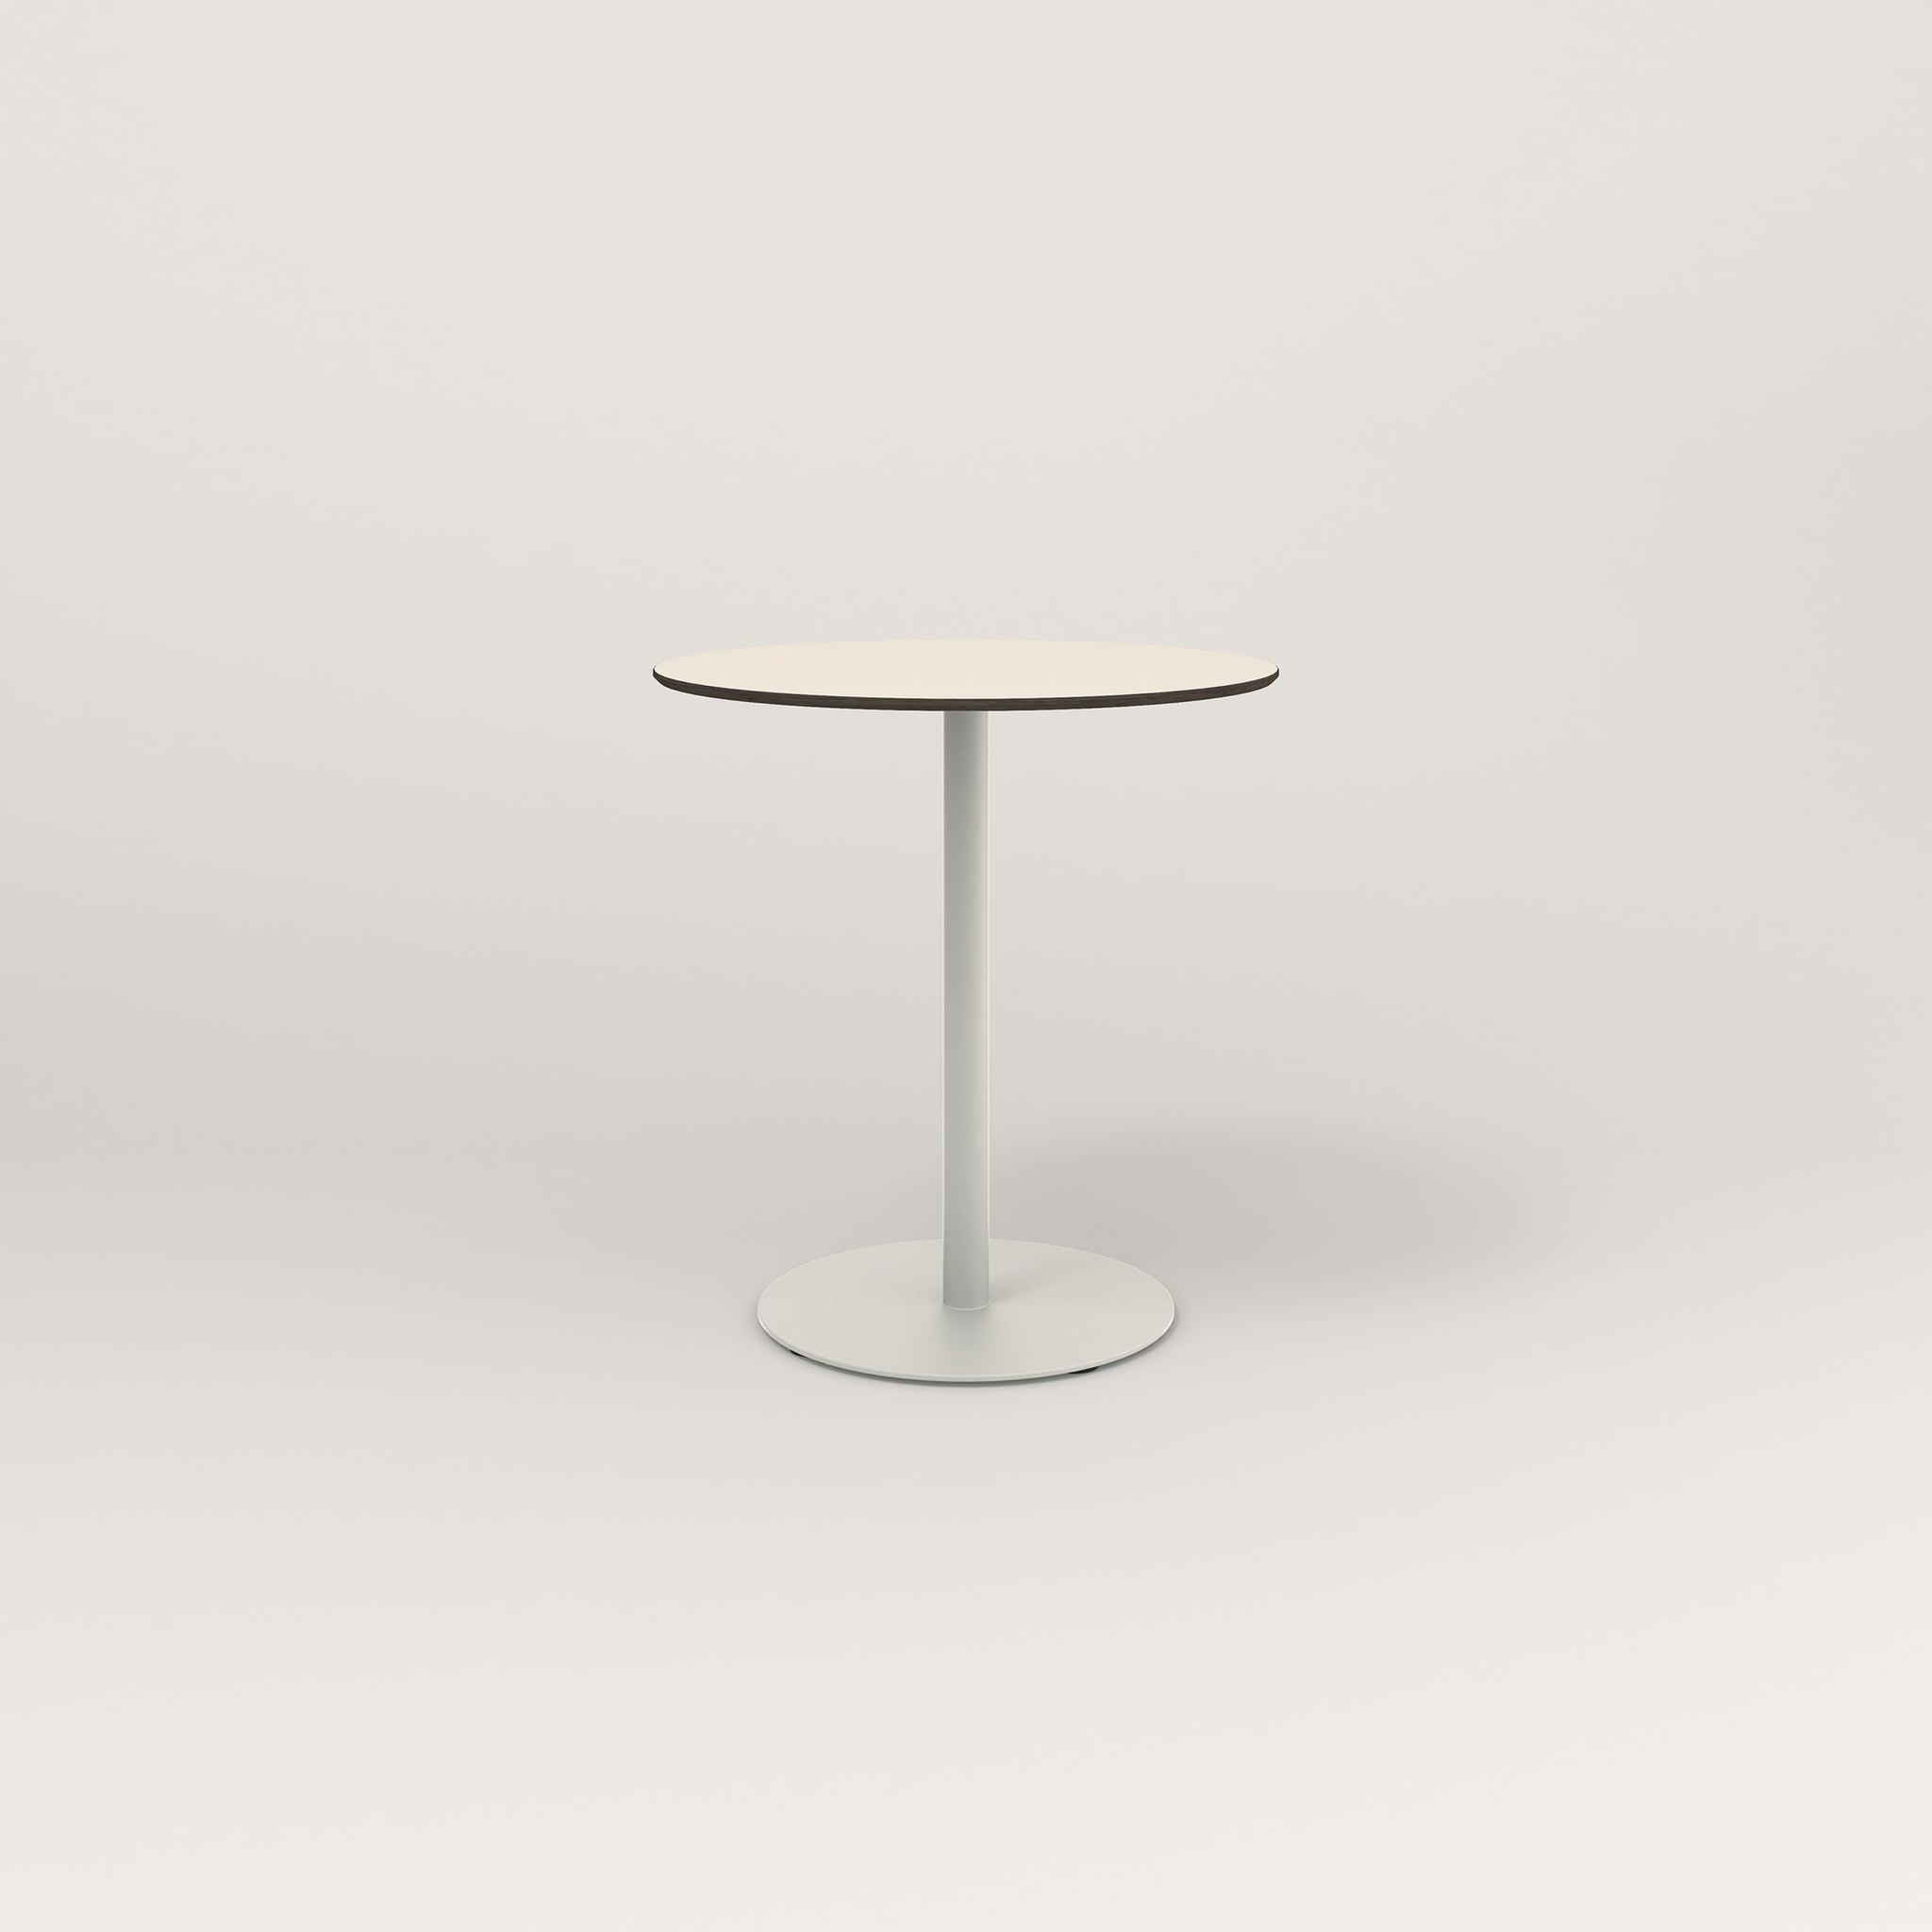 RAD Cafe Table, Round Weighted Base in hpl and white powder coat.